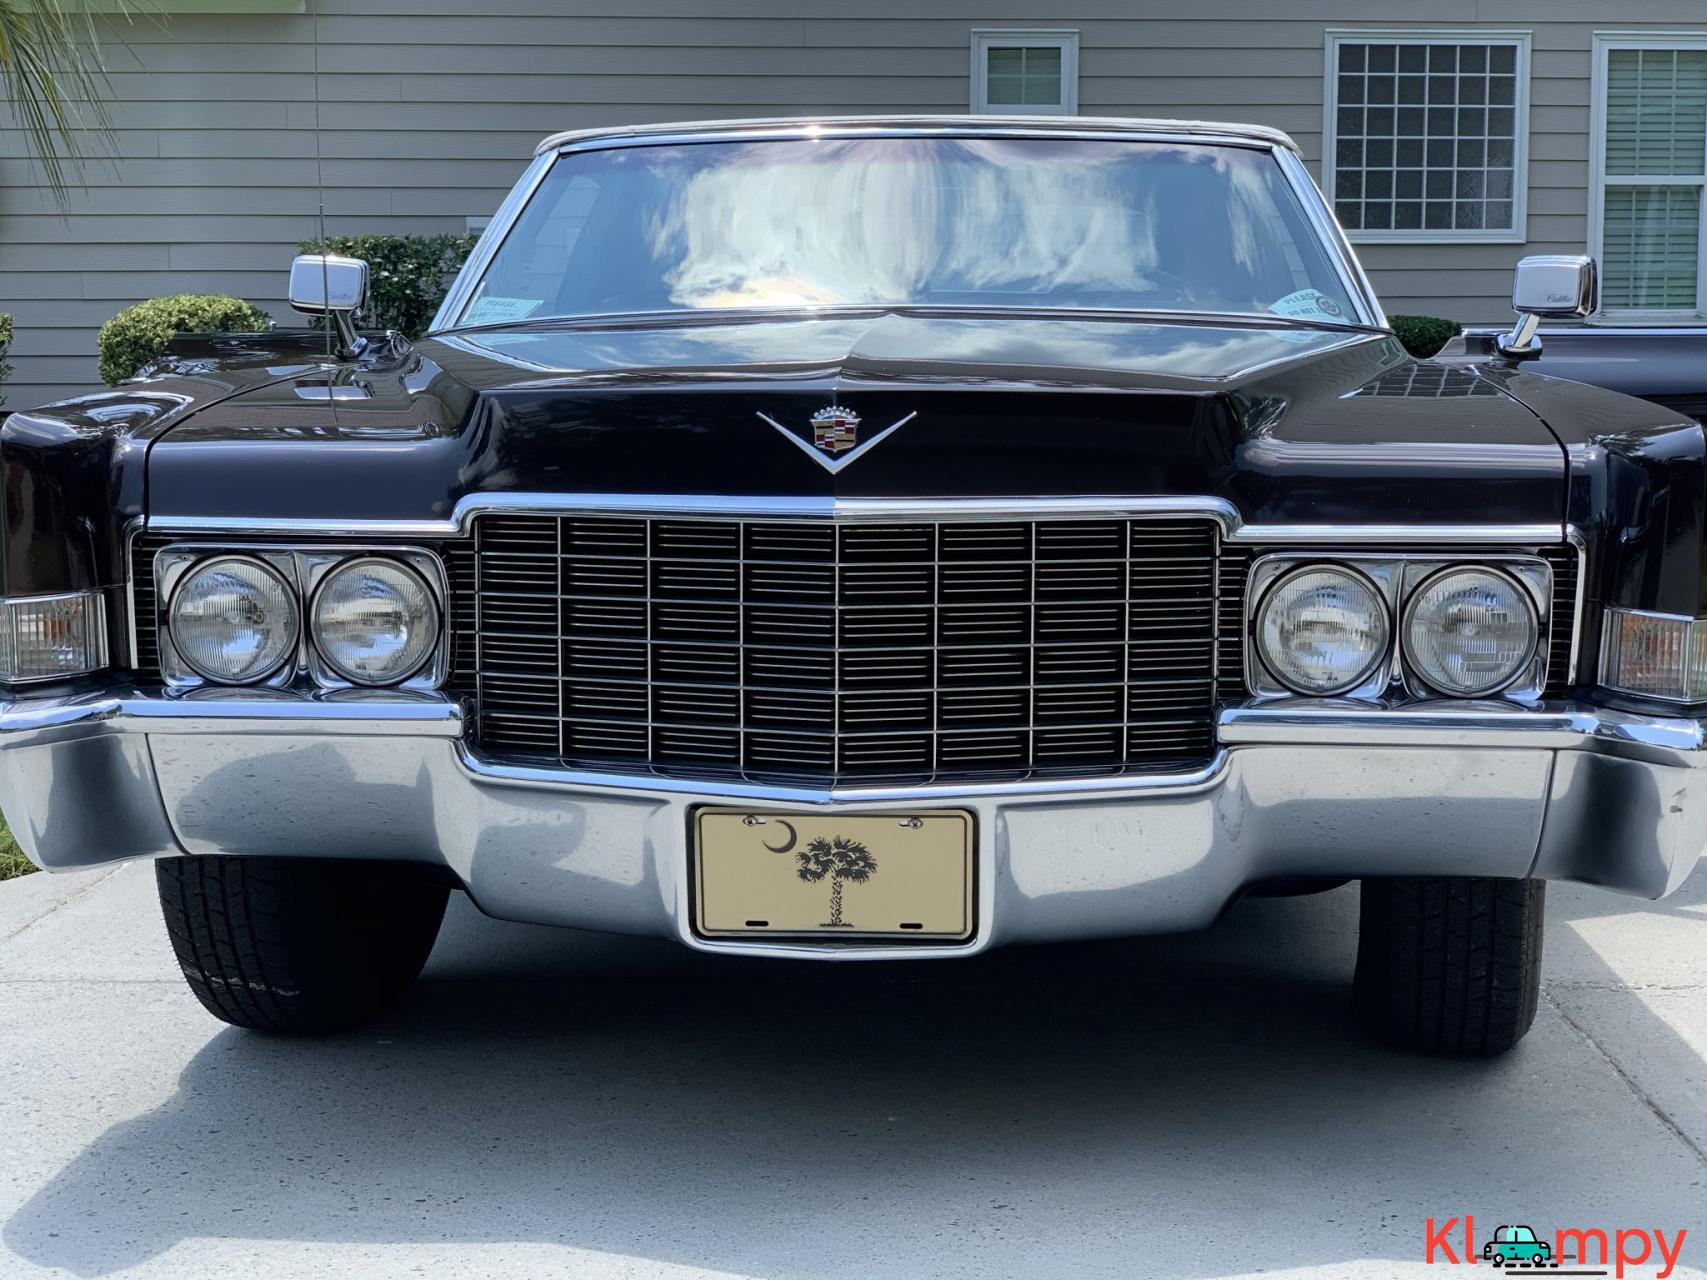 1969 Cadillac DeVille Convertible 472 3-Speed - 3/22